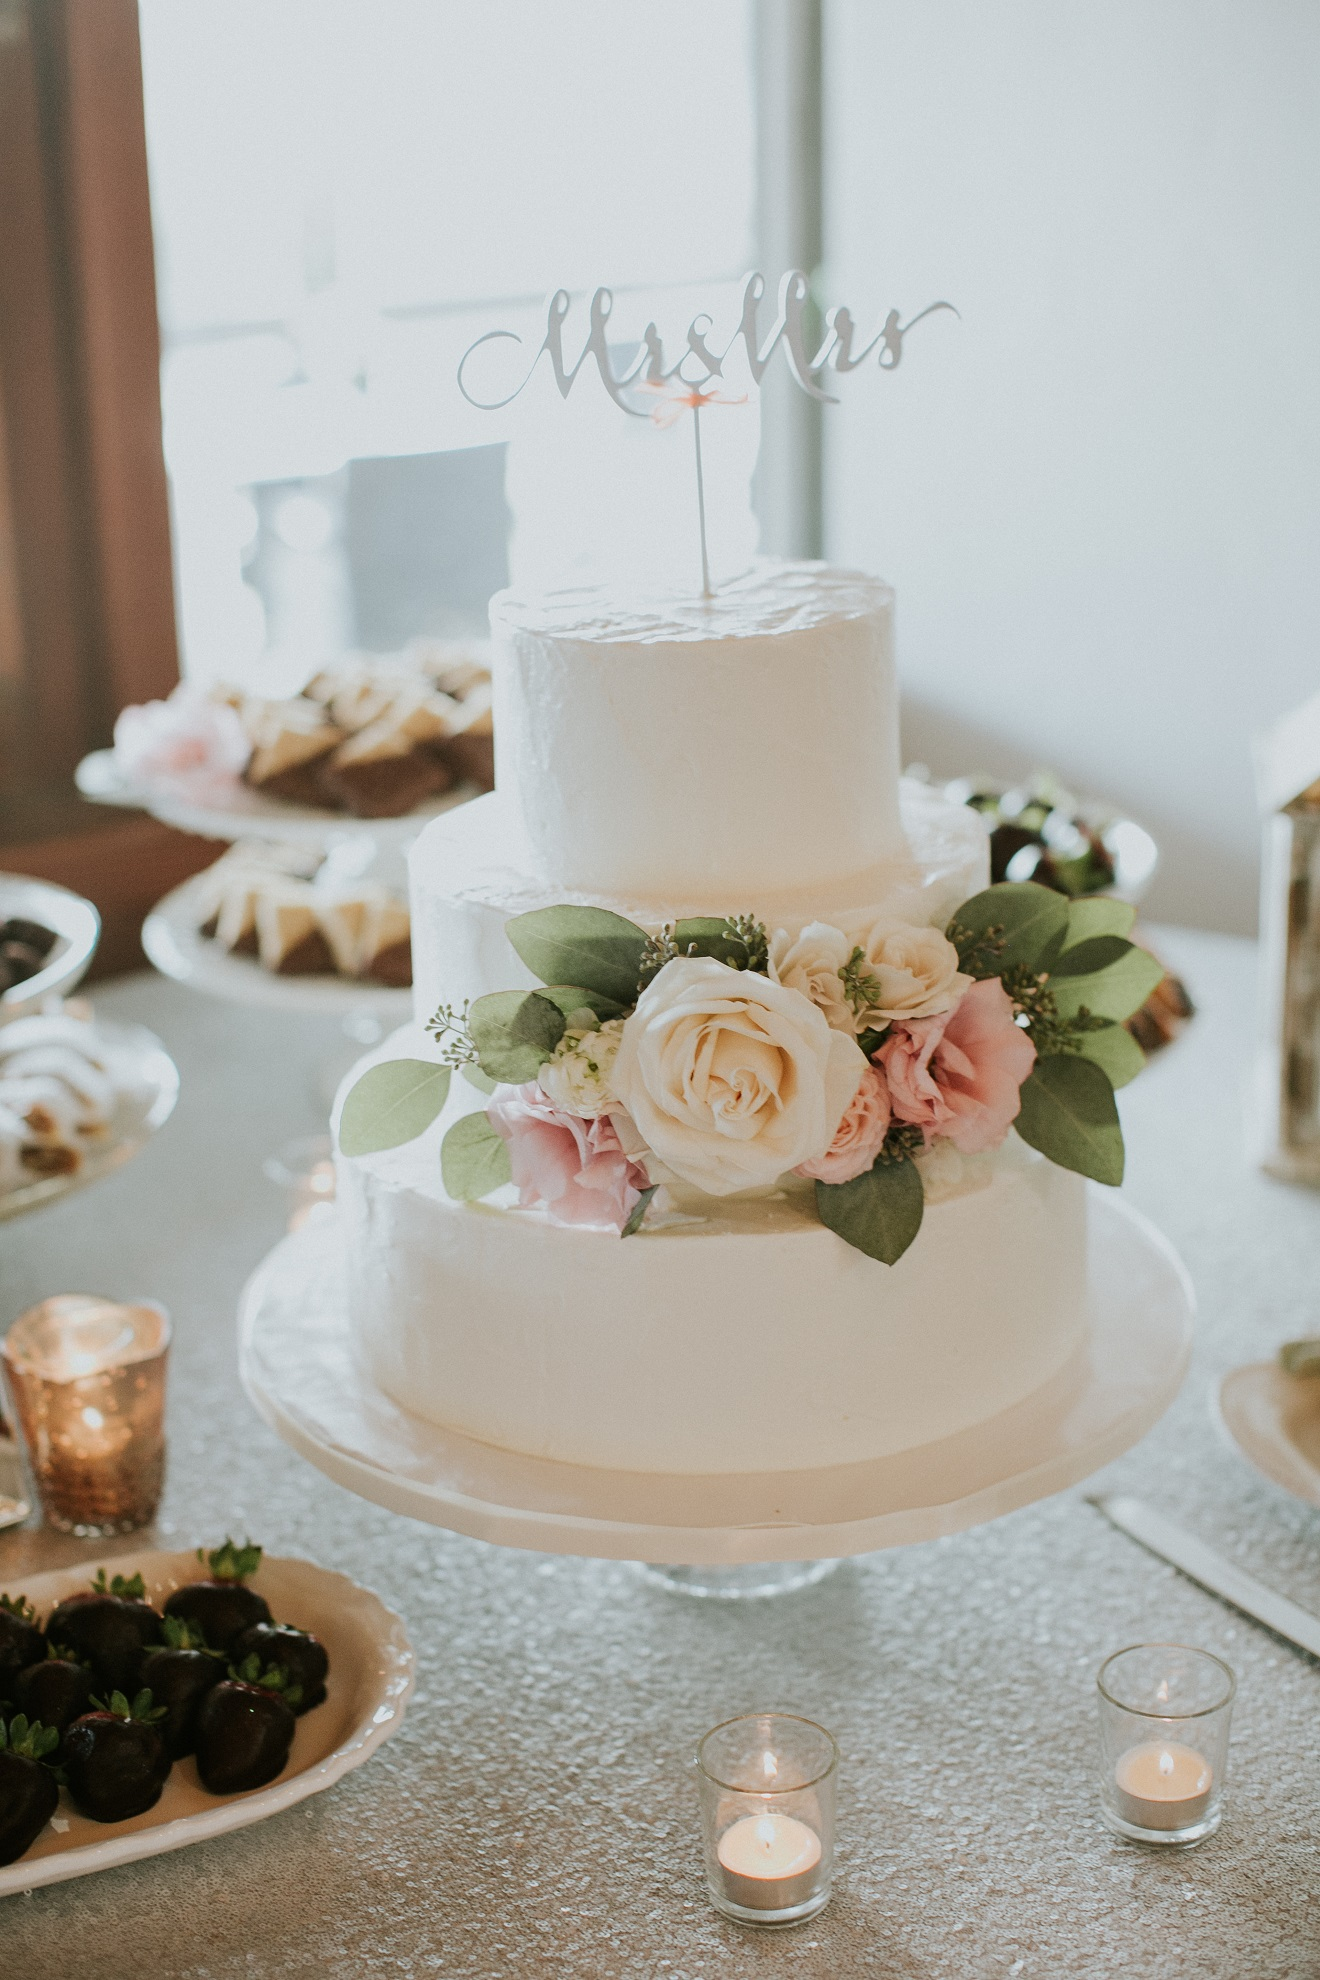 Best Wedding Cakes In San Diego